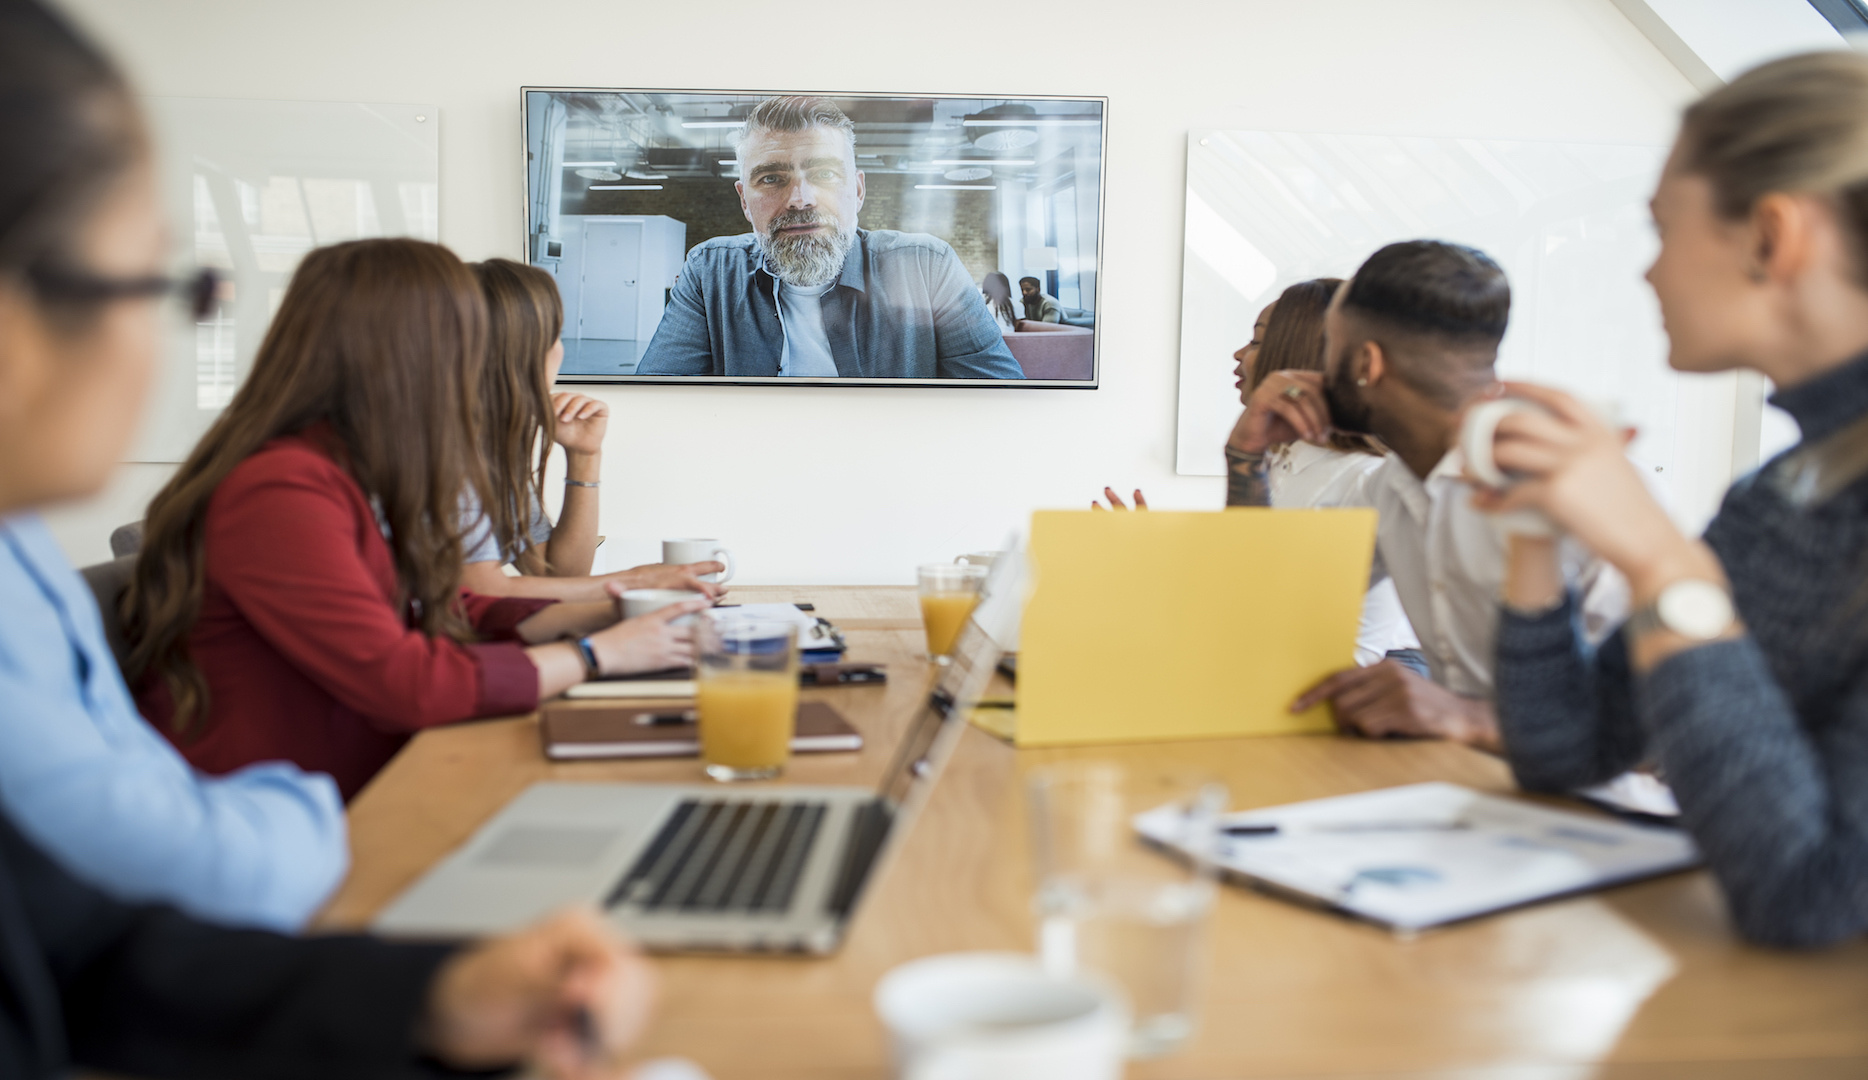 Group of businesspeople having a video conference call with their superior